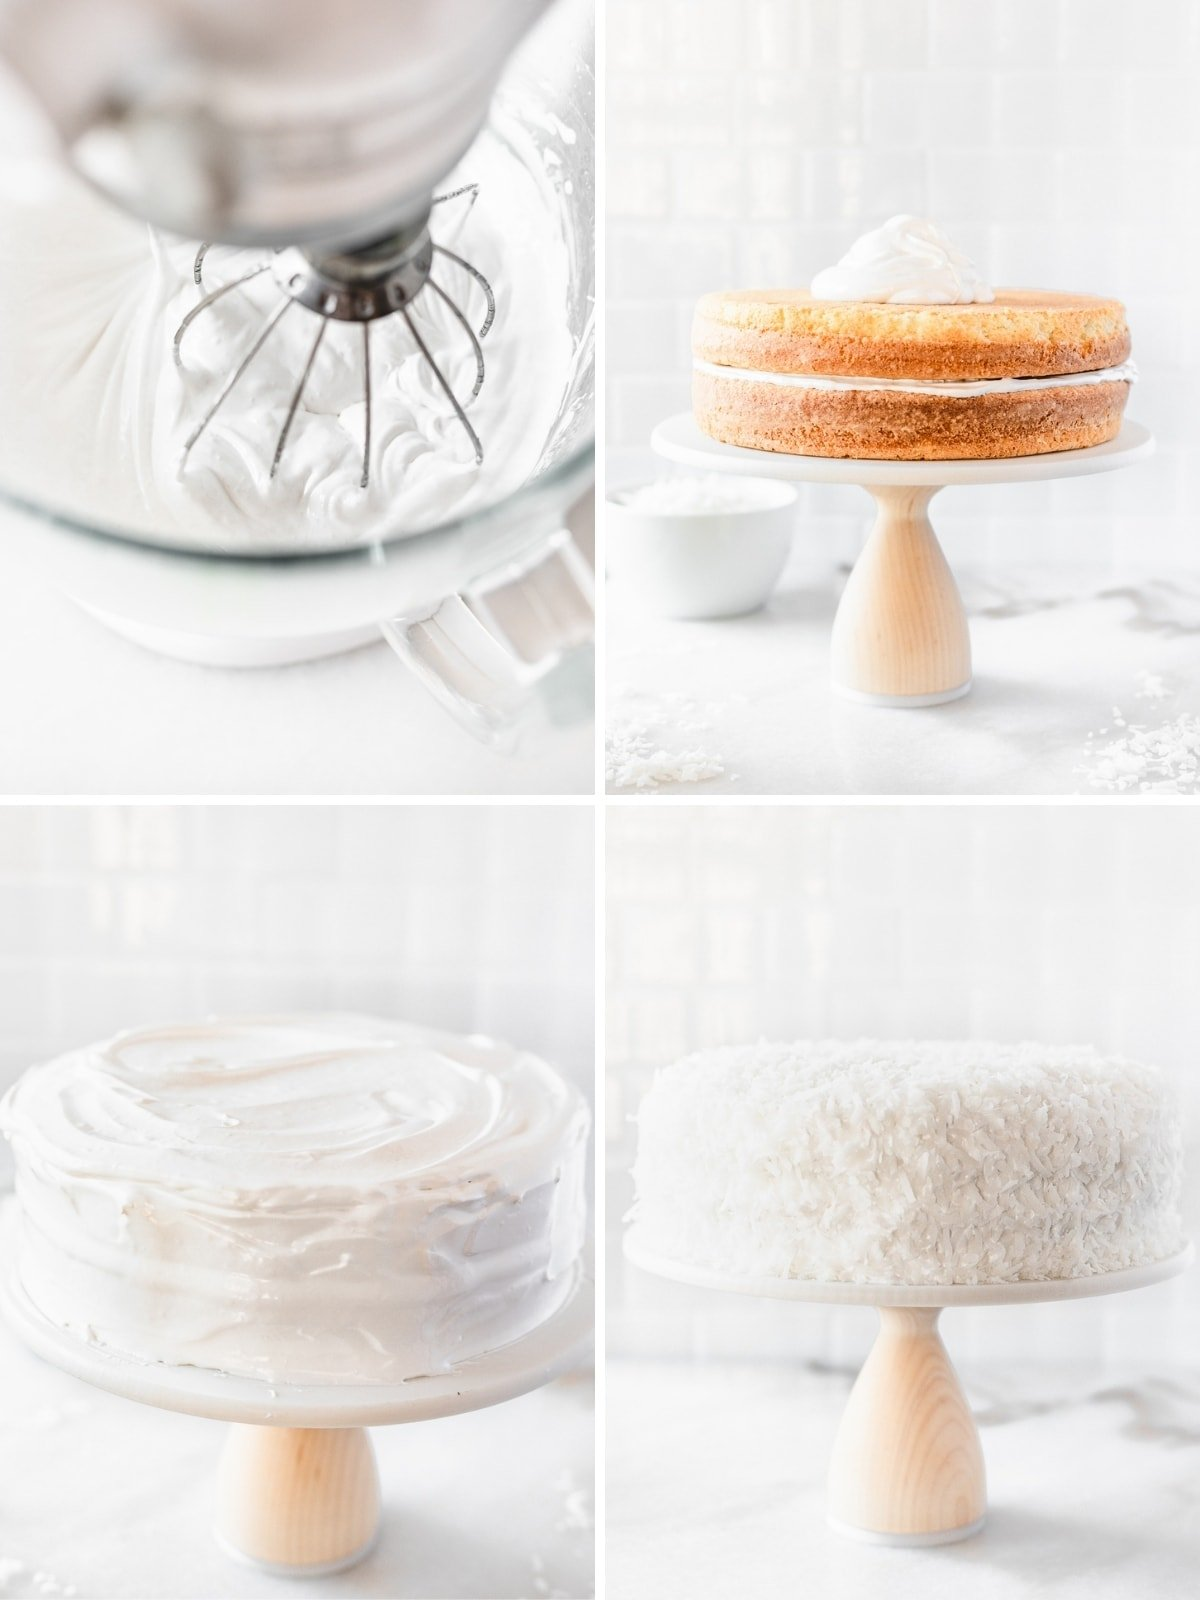 Grandpa S Favorite Coconut Cake With 7 Minute Frosting Lively Table